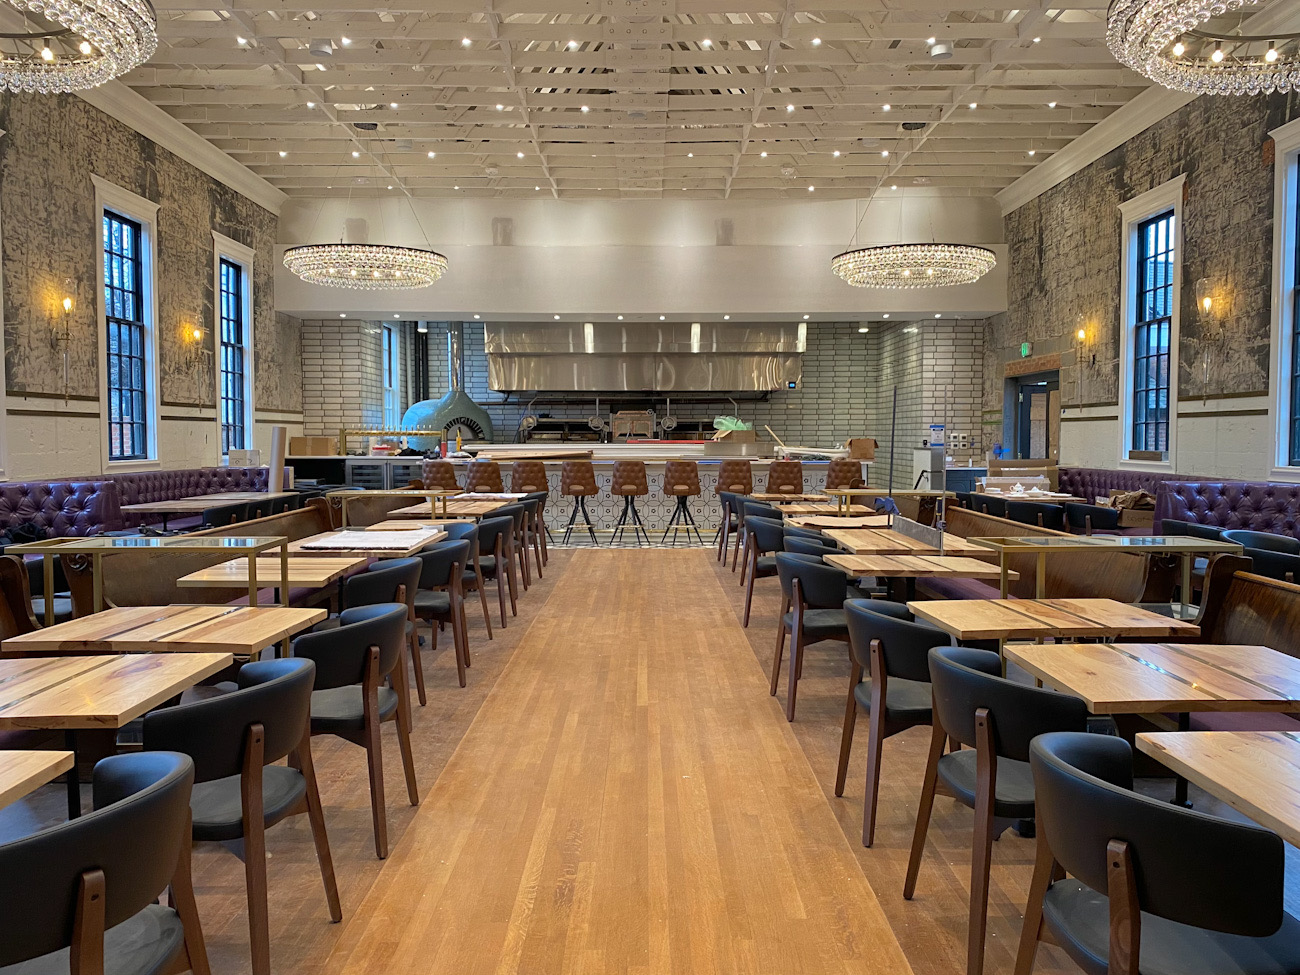 The 20 most anticipated new restaurants and bars in 2021